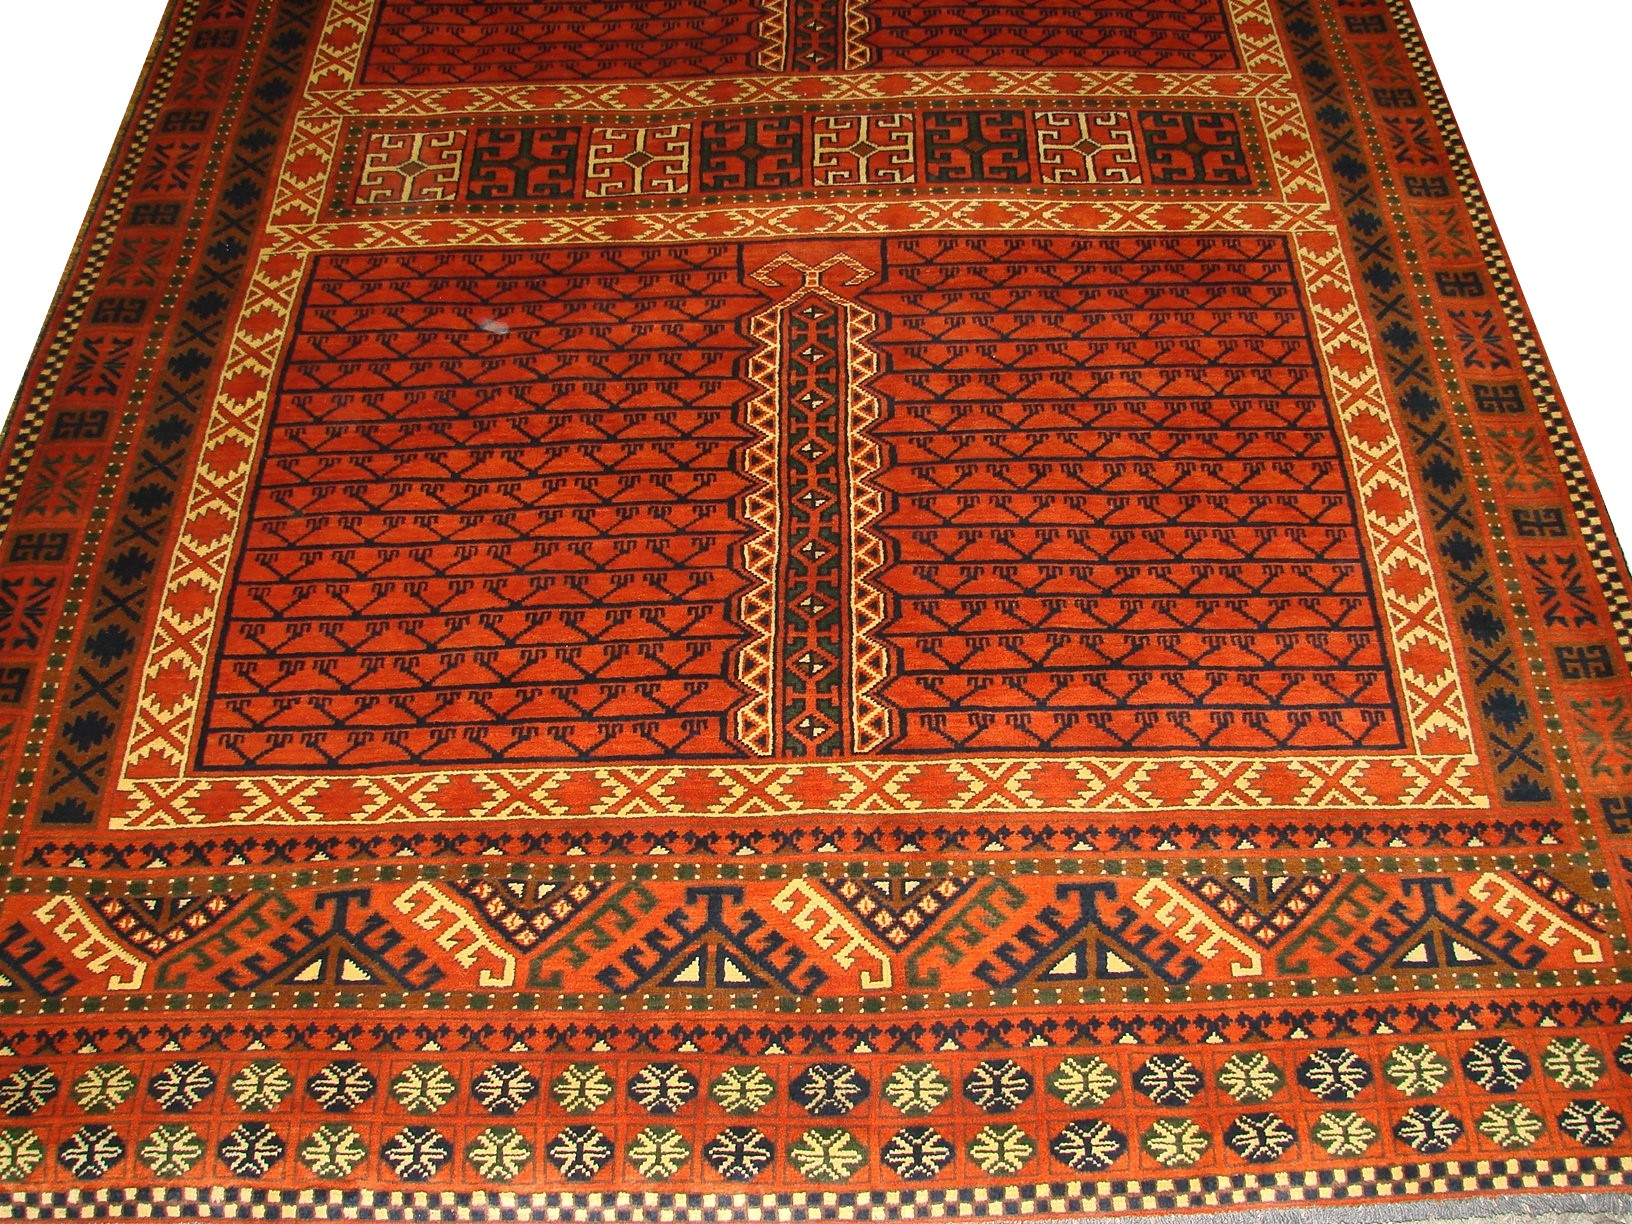 6x9 Kazak Hand Knotted Wool Area Rug - MR12787